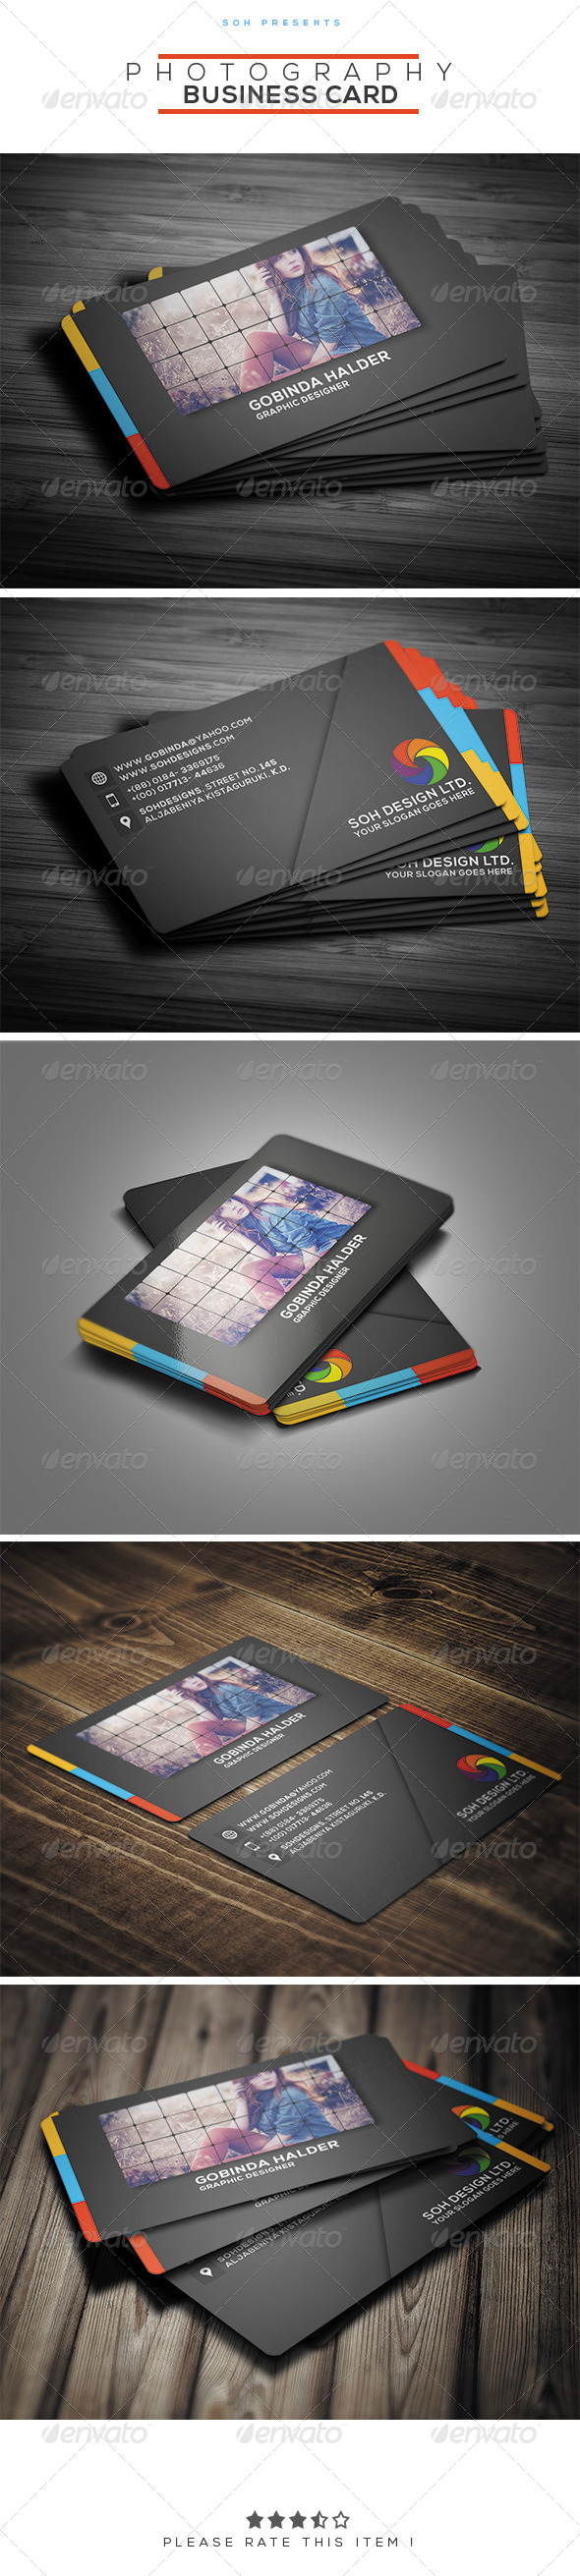 GraphicRiver Photography Business Card Template 8279741